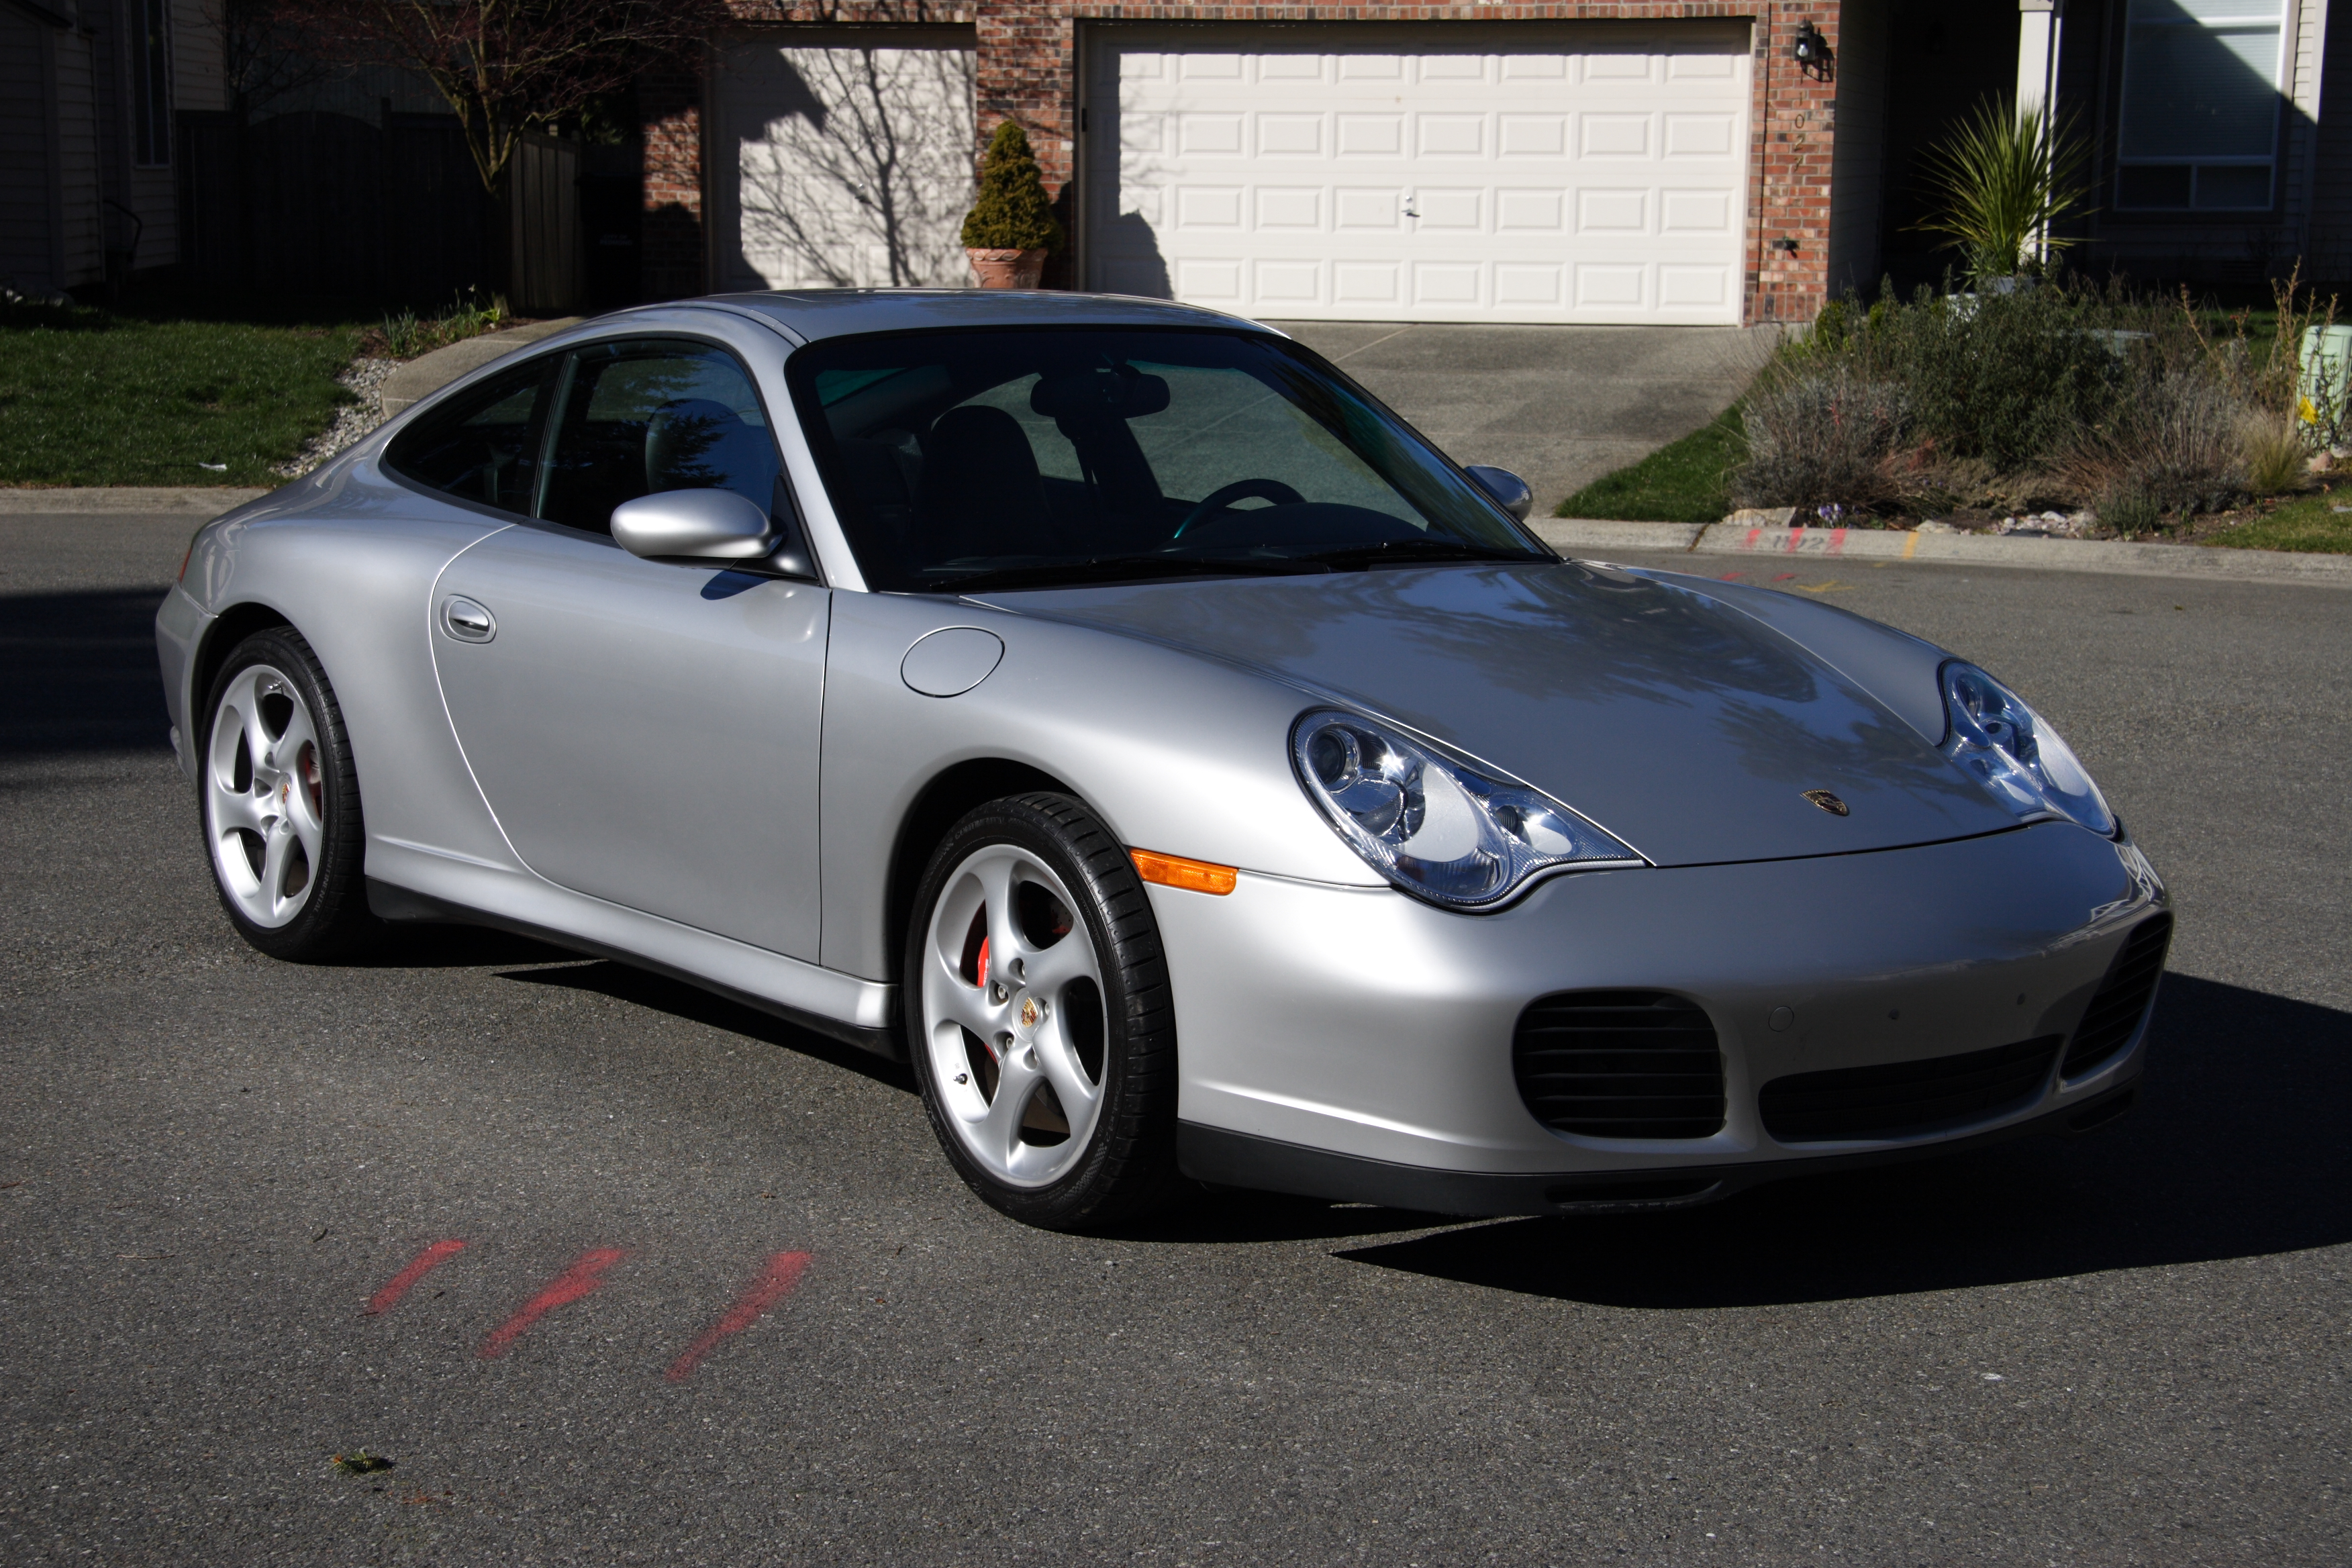 porsche 911 turbo (996) 2000 wallpaper #14